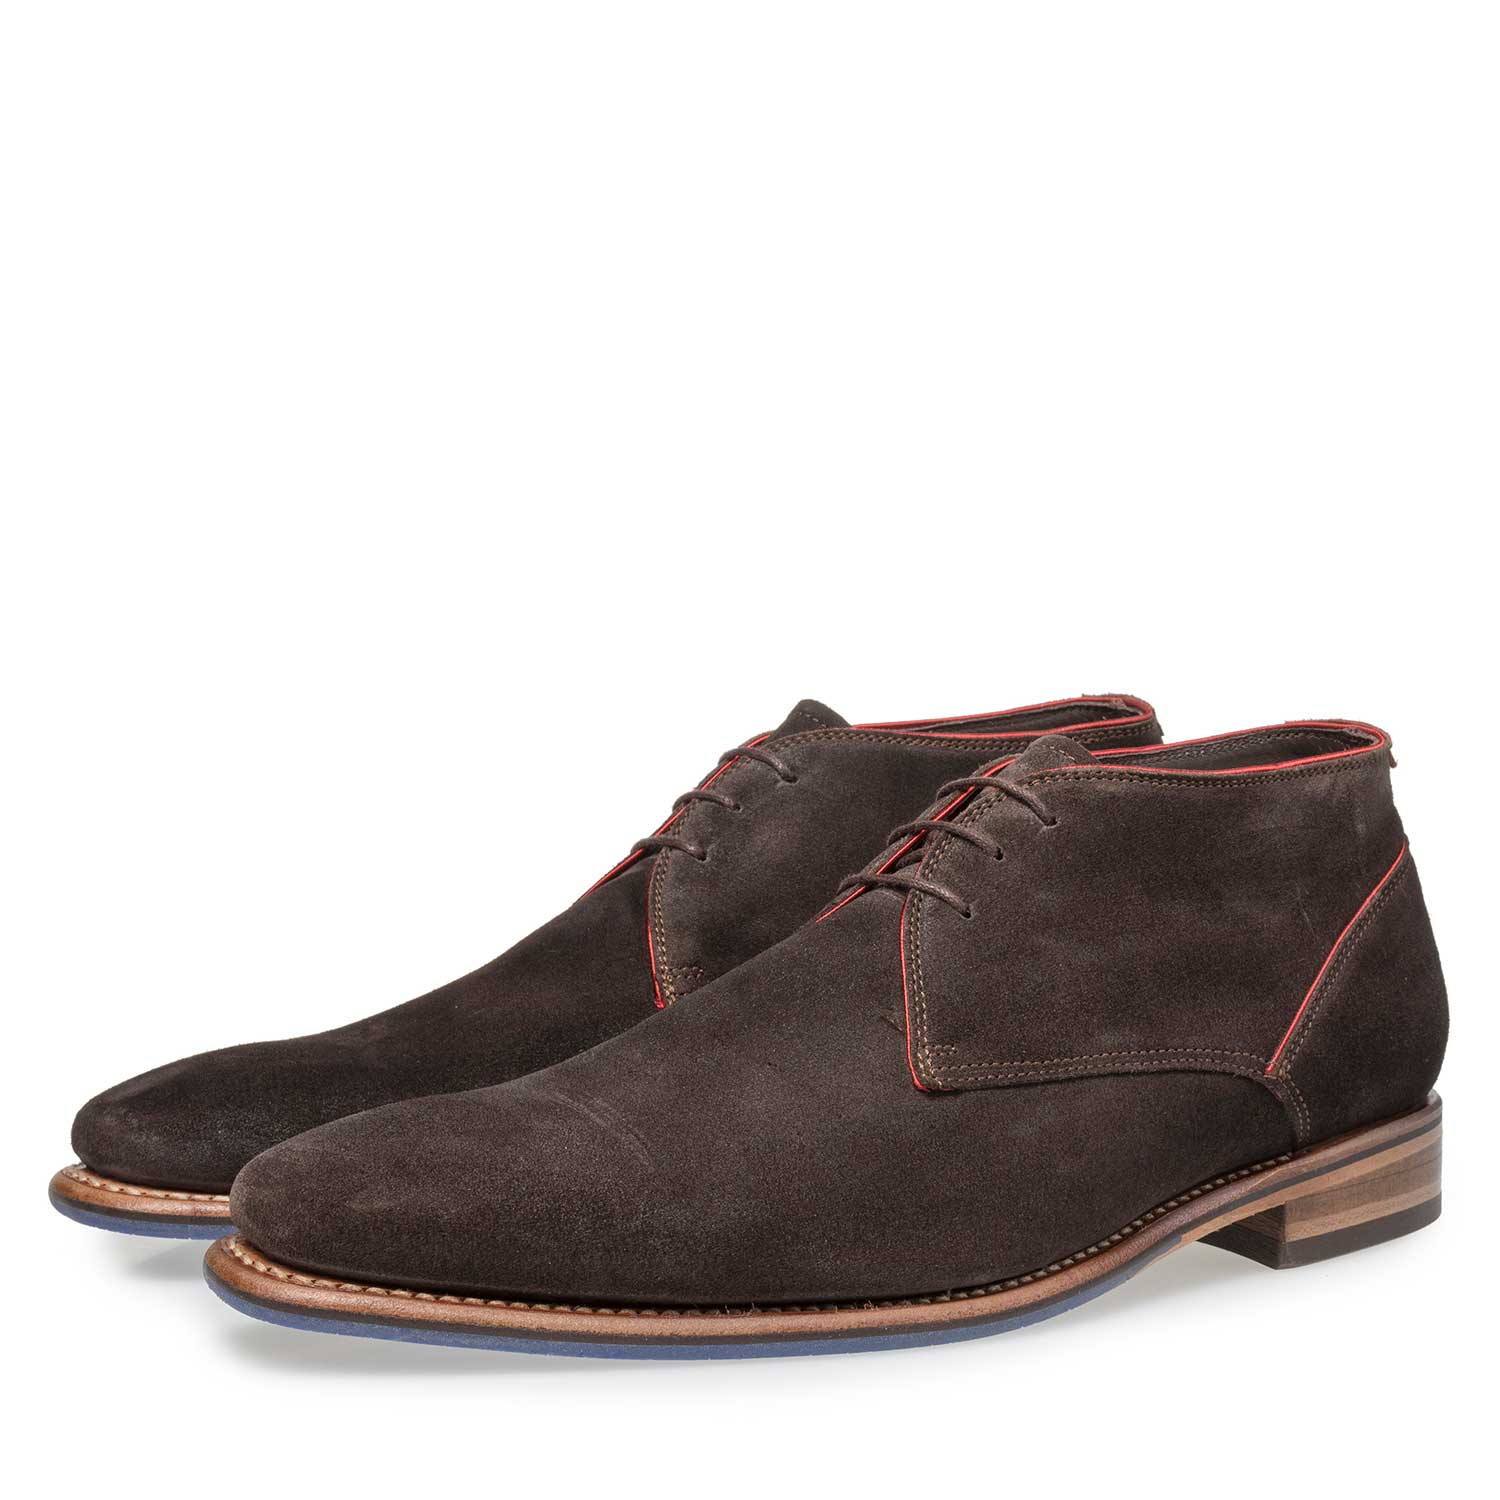 10673/13 - Dark brown suede leather lace boot